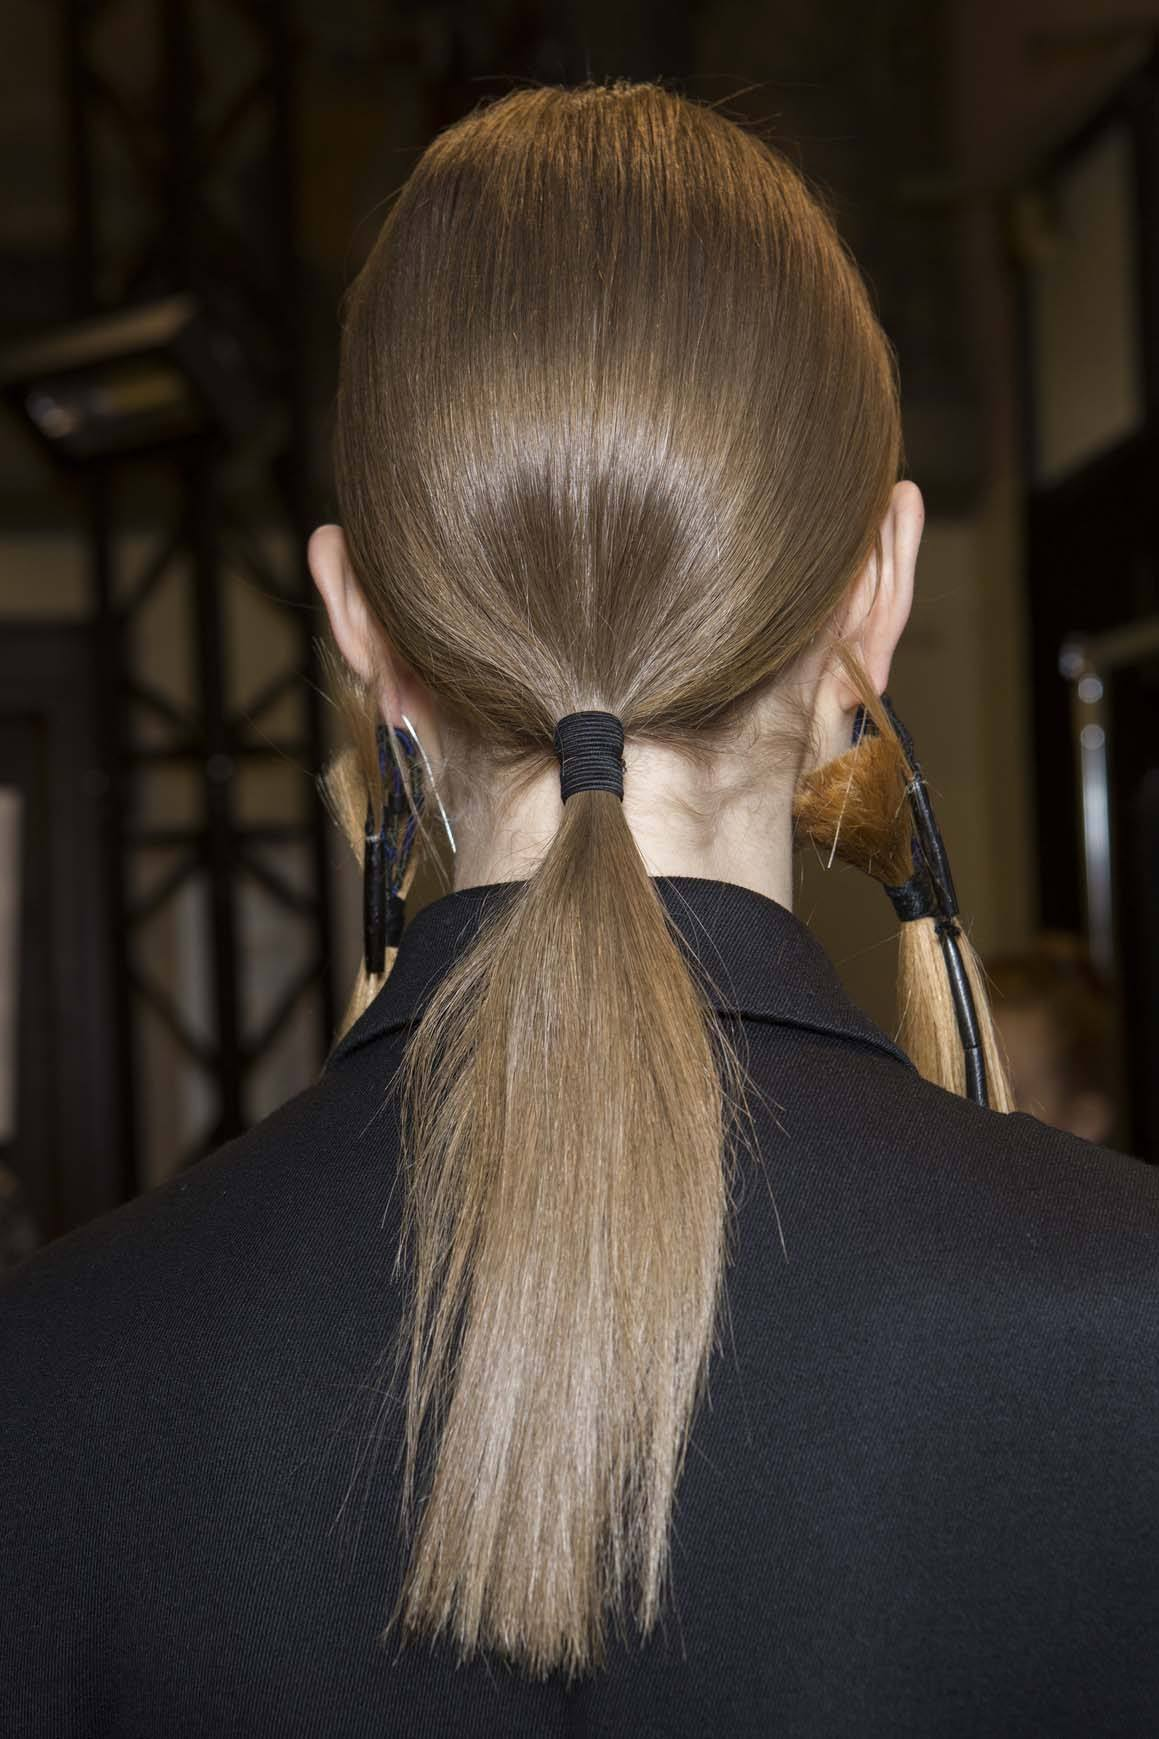 silky low ponytails are new hairstyles for spring